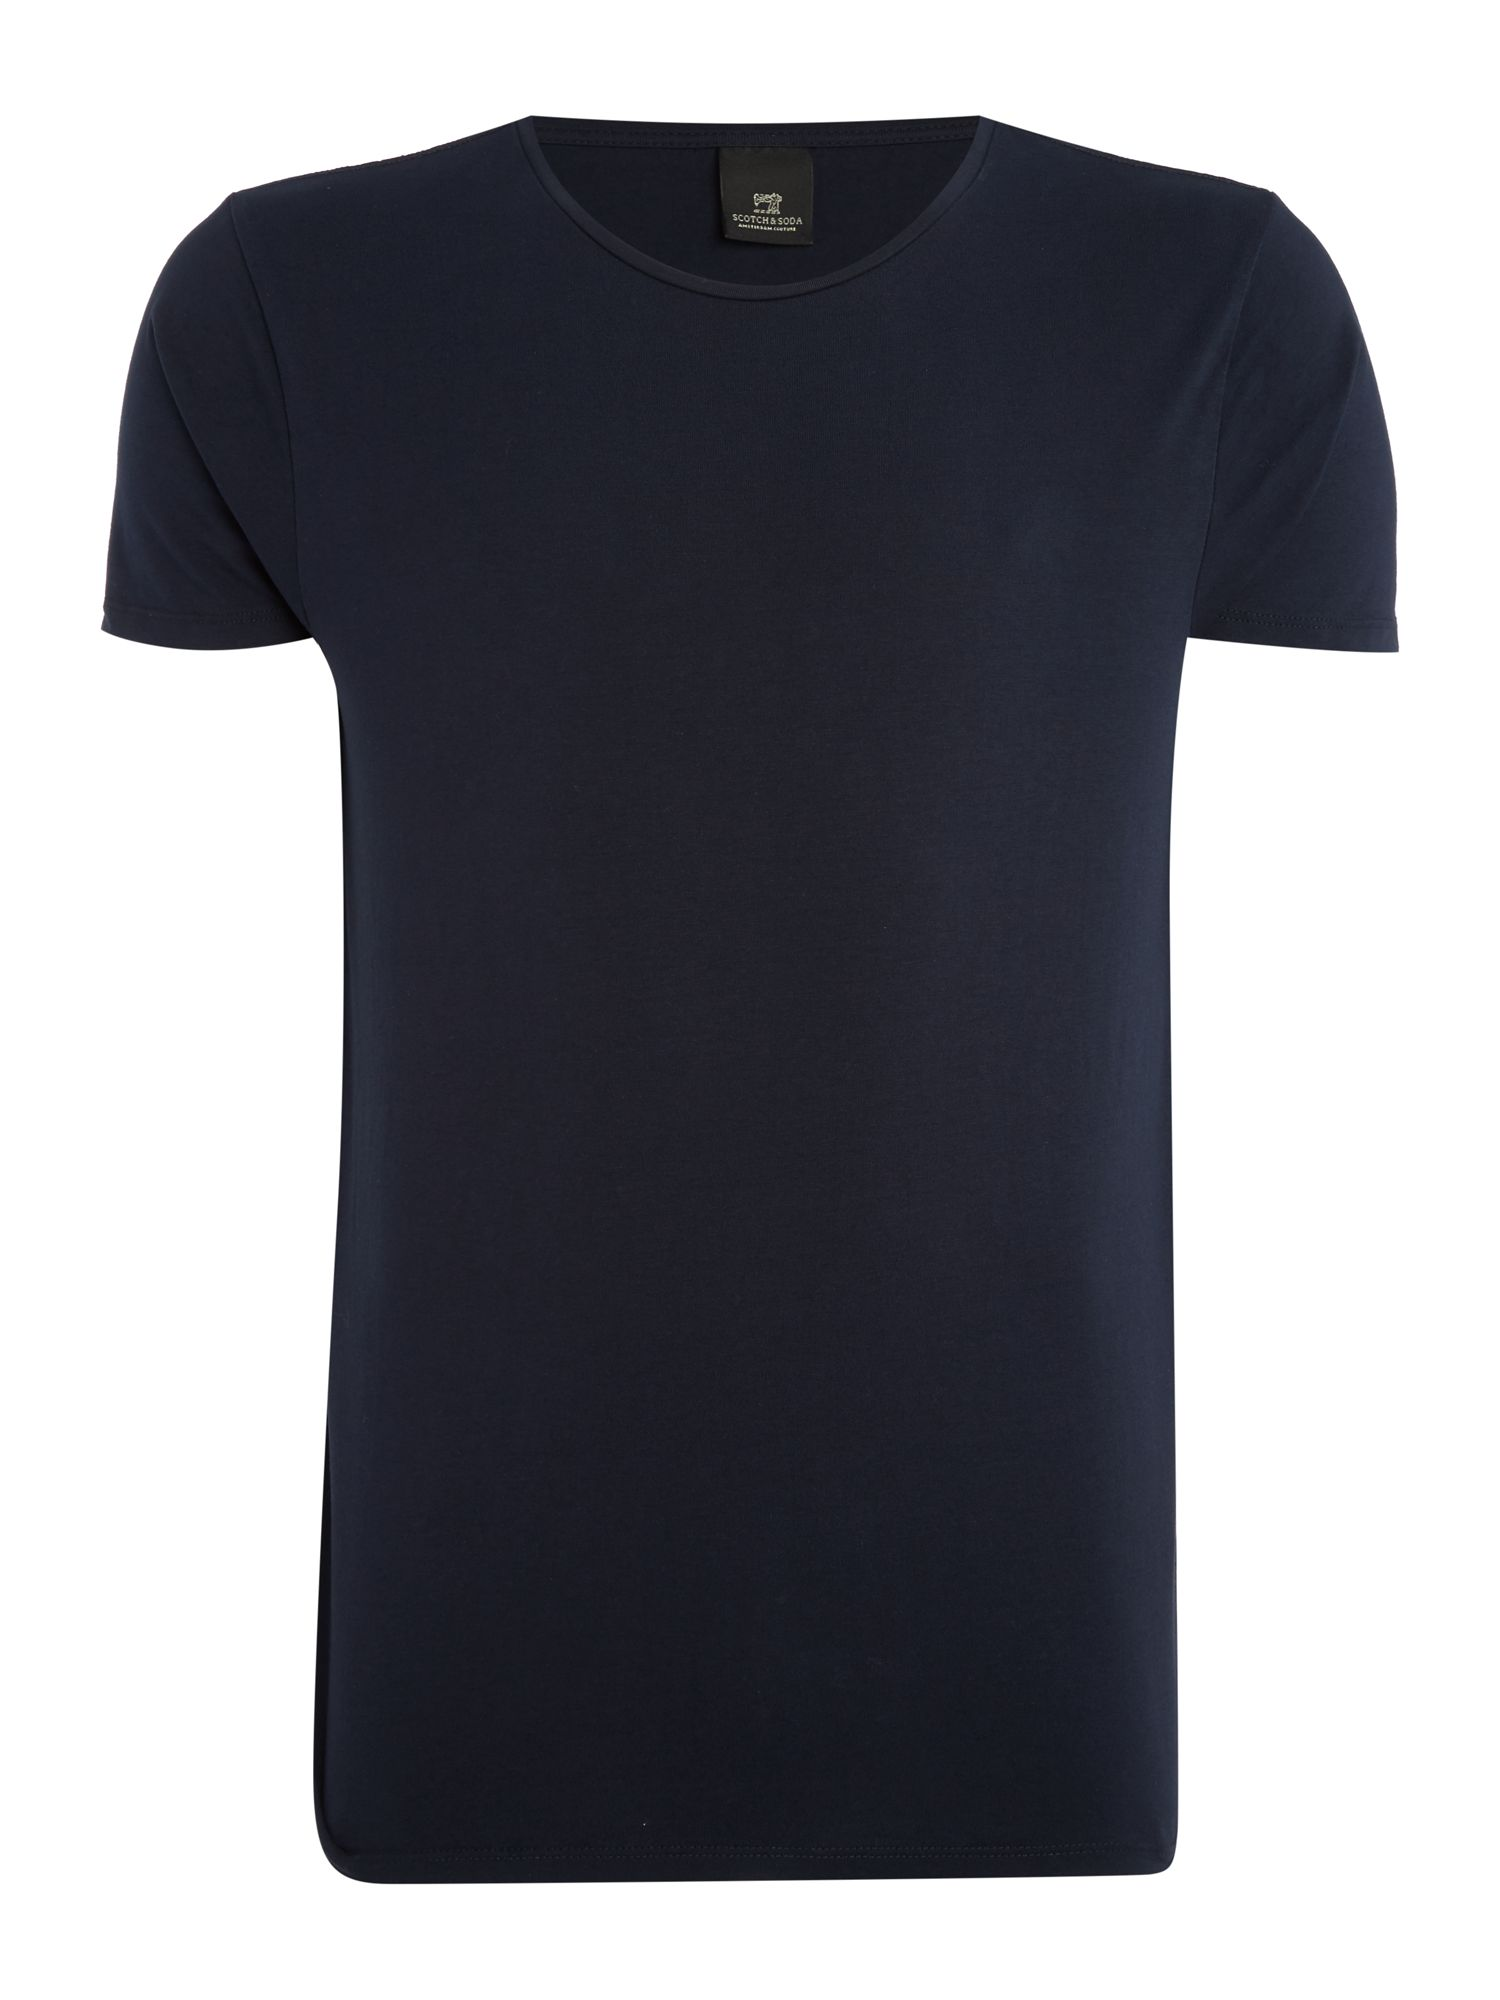 Men's Scotch & Soda Short Sleeve Tee, Blue